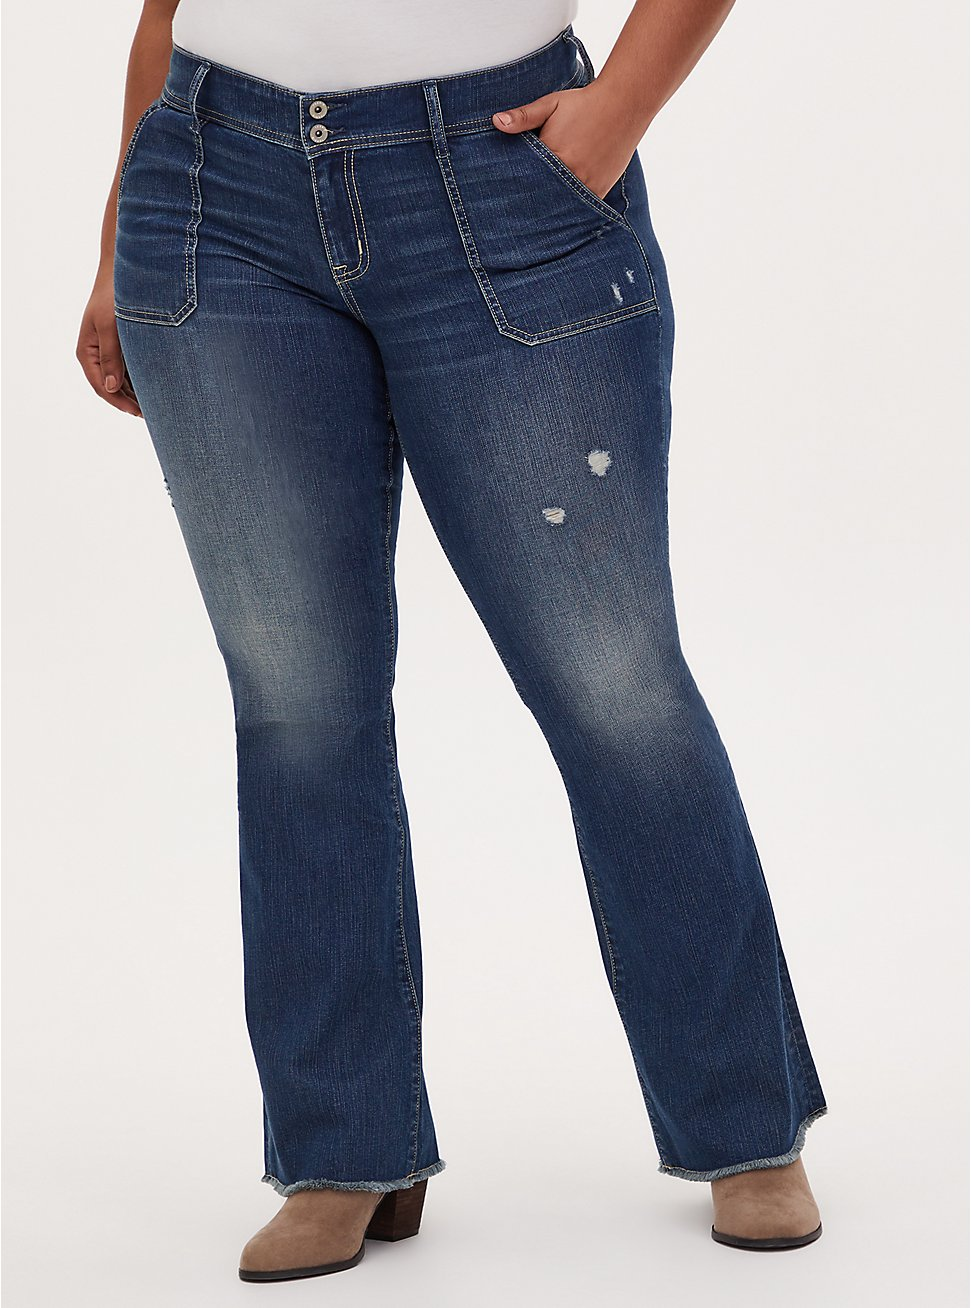 Mid Rise Flare Jean - Vintage Stretch Medium Wash with Frayed hem, BACK COUNTRY, hi-res